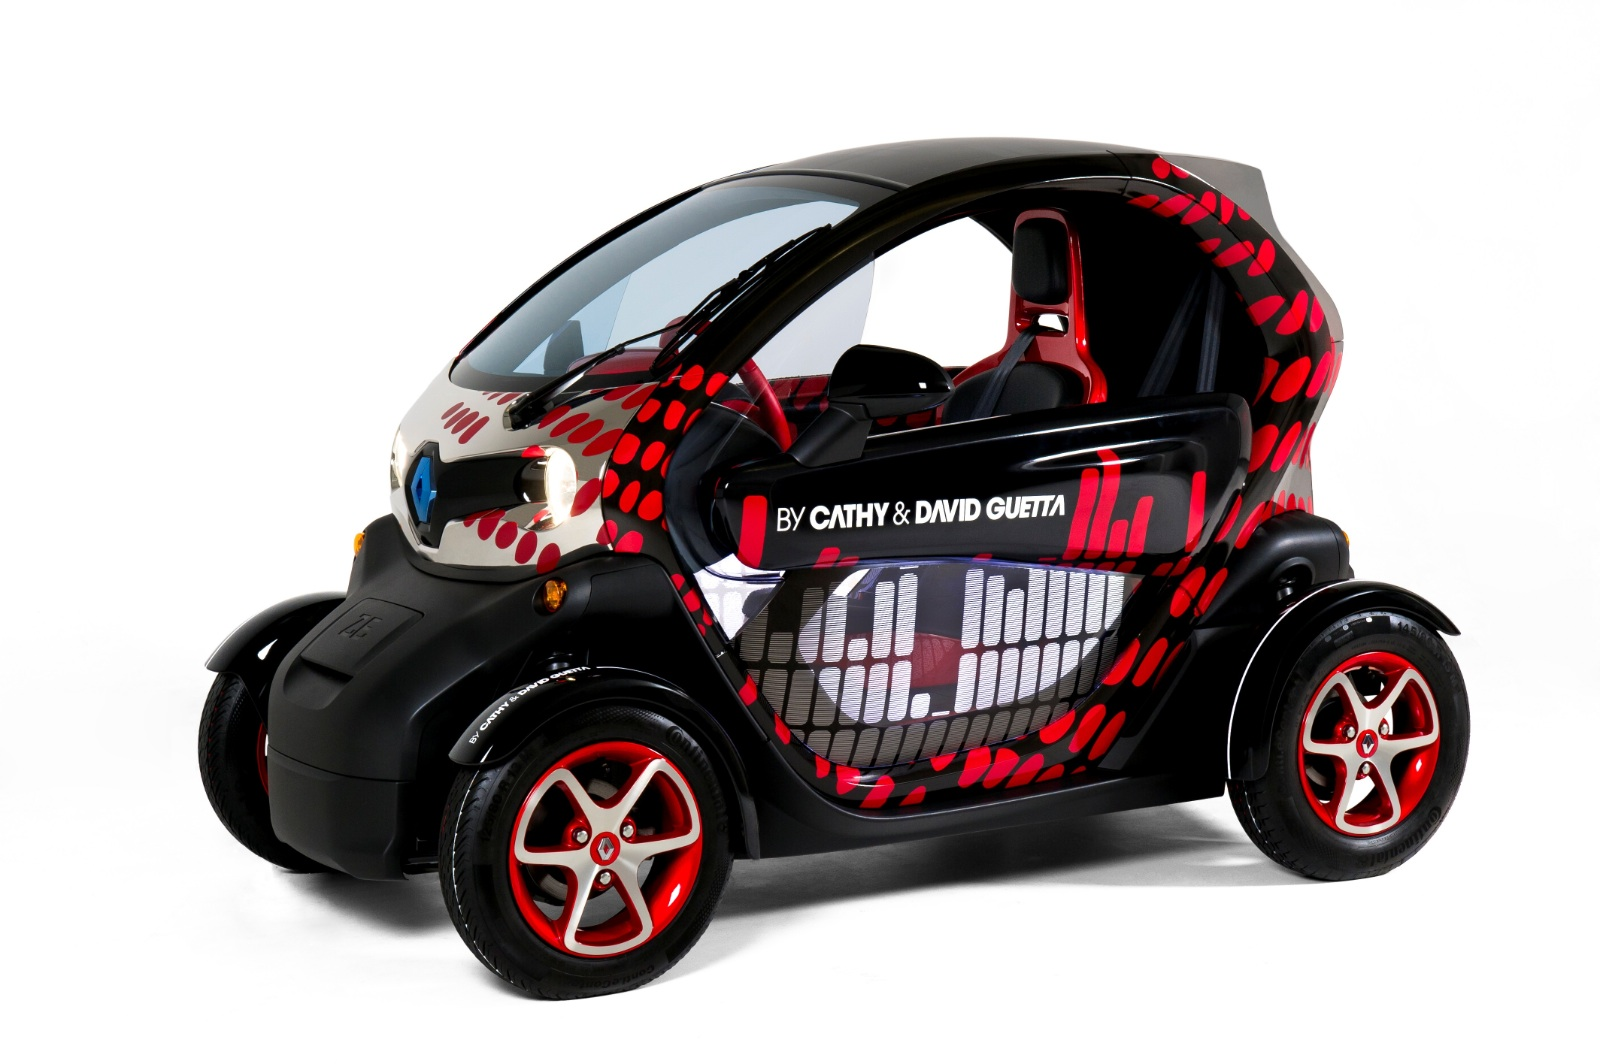 david guetta personalizes renault twizy ev autoevolution. Black Bedroom Furniture Sets. Home Design Ideas